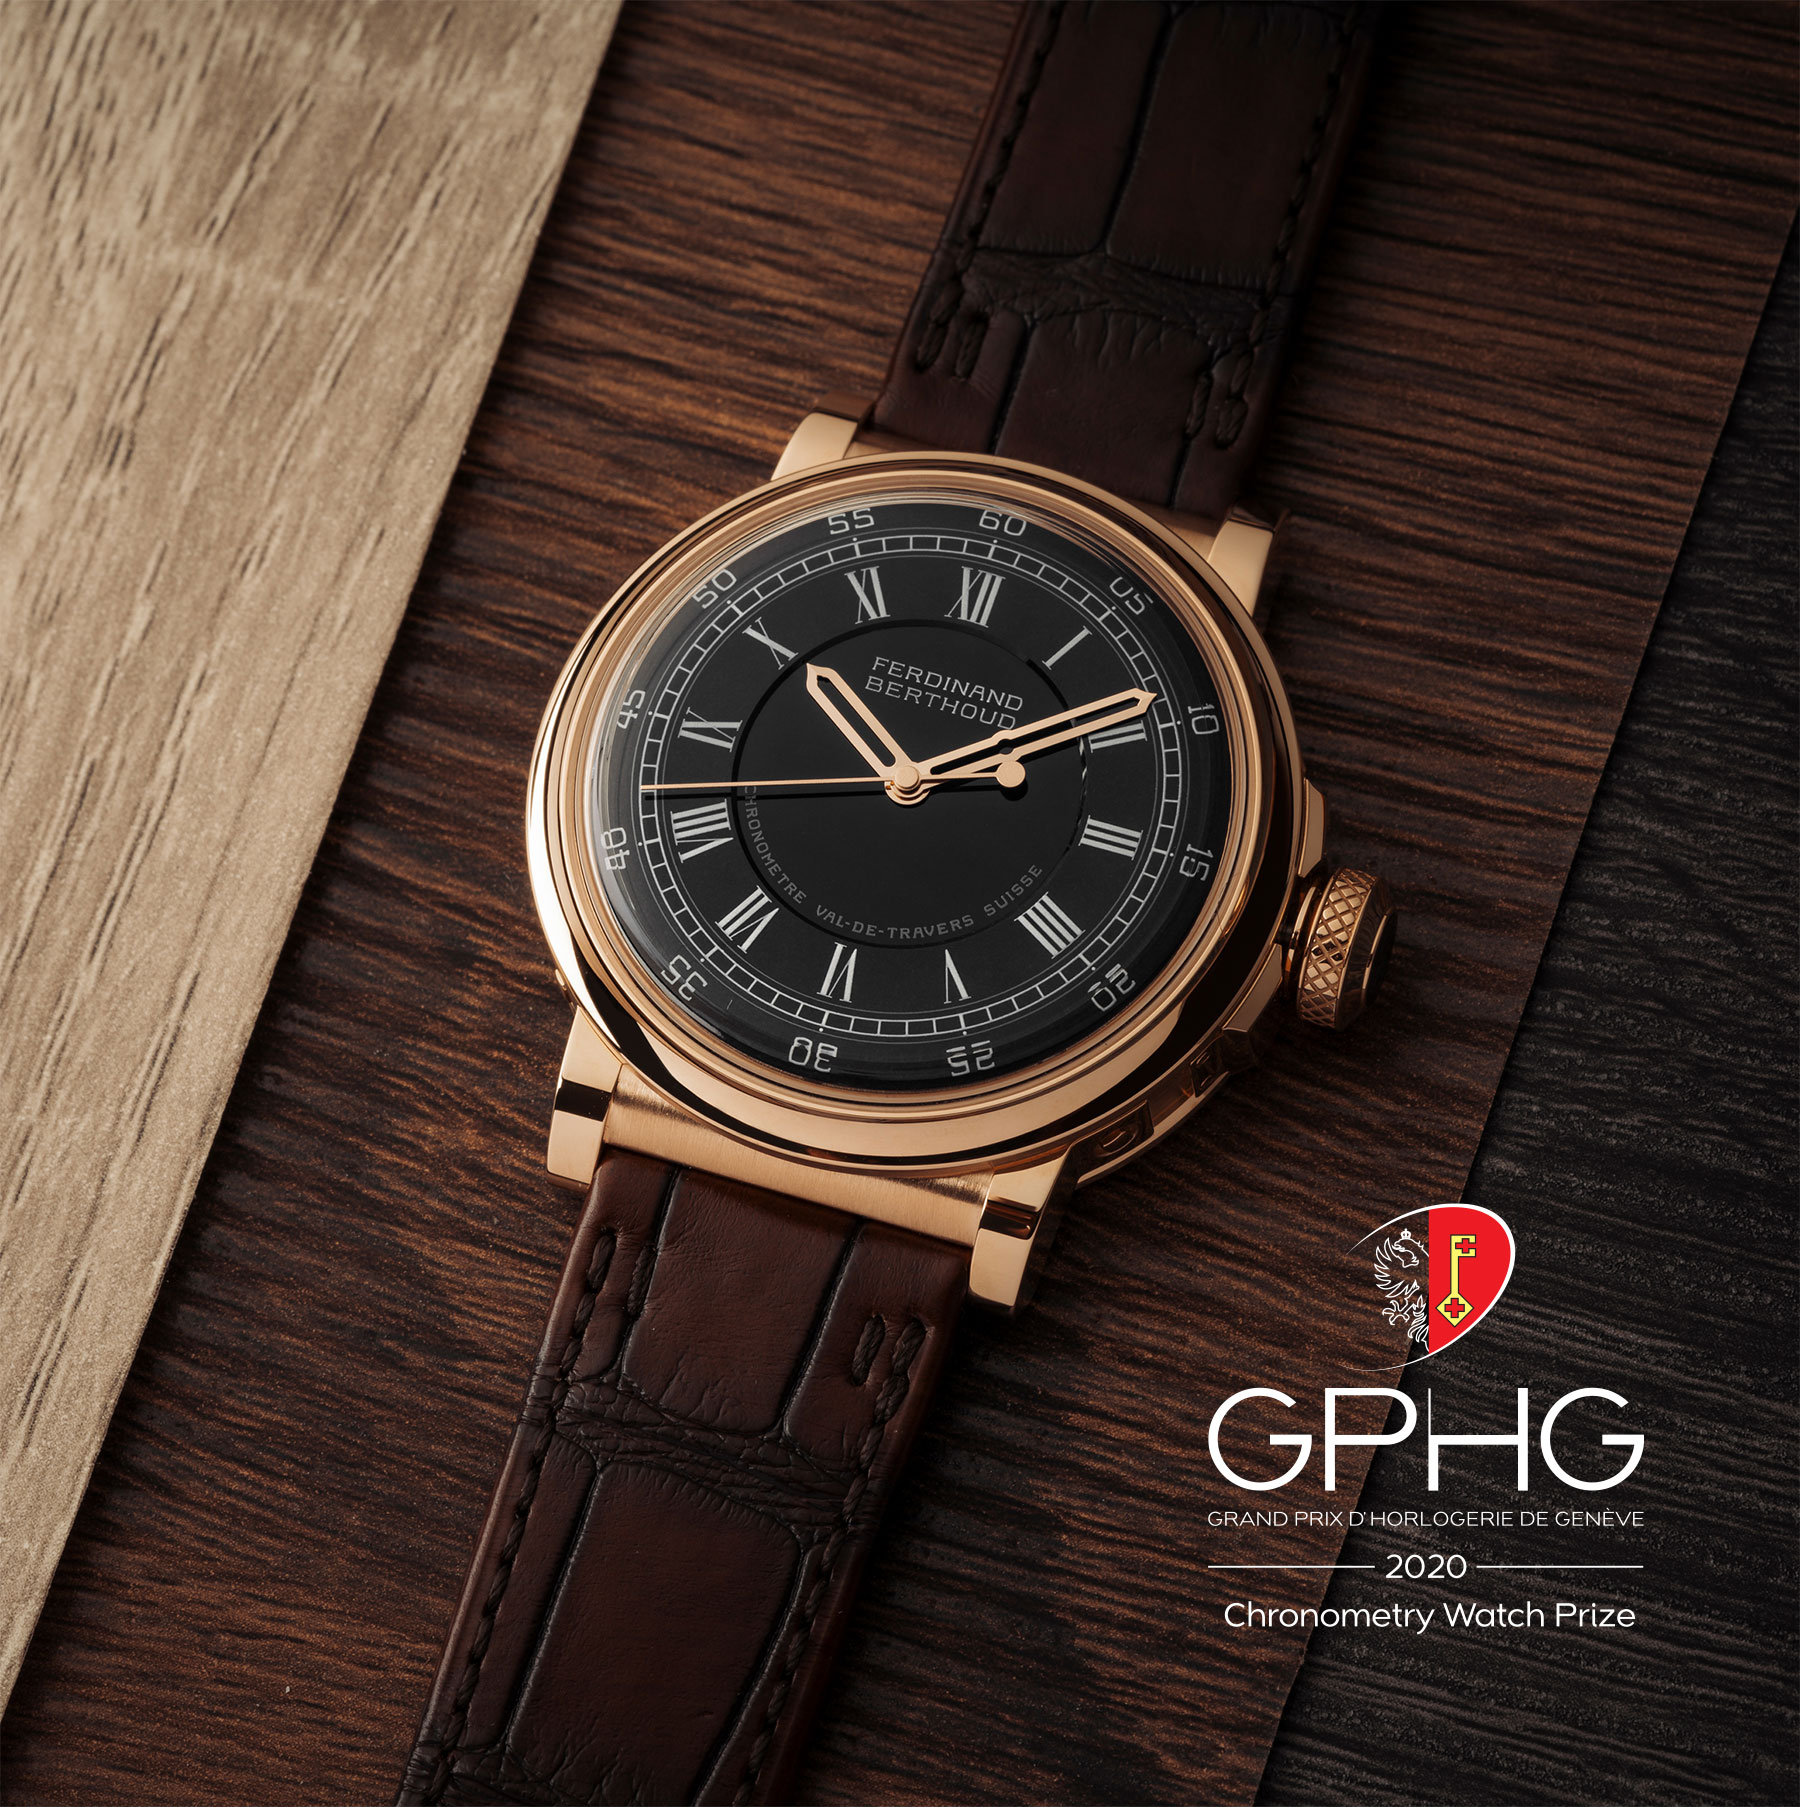 Chronométrie Ferdinand Berthoud honoured at the 2020 Grand Prix d'Horlogerie de Genève (GPHG) for the second consecutive year